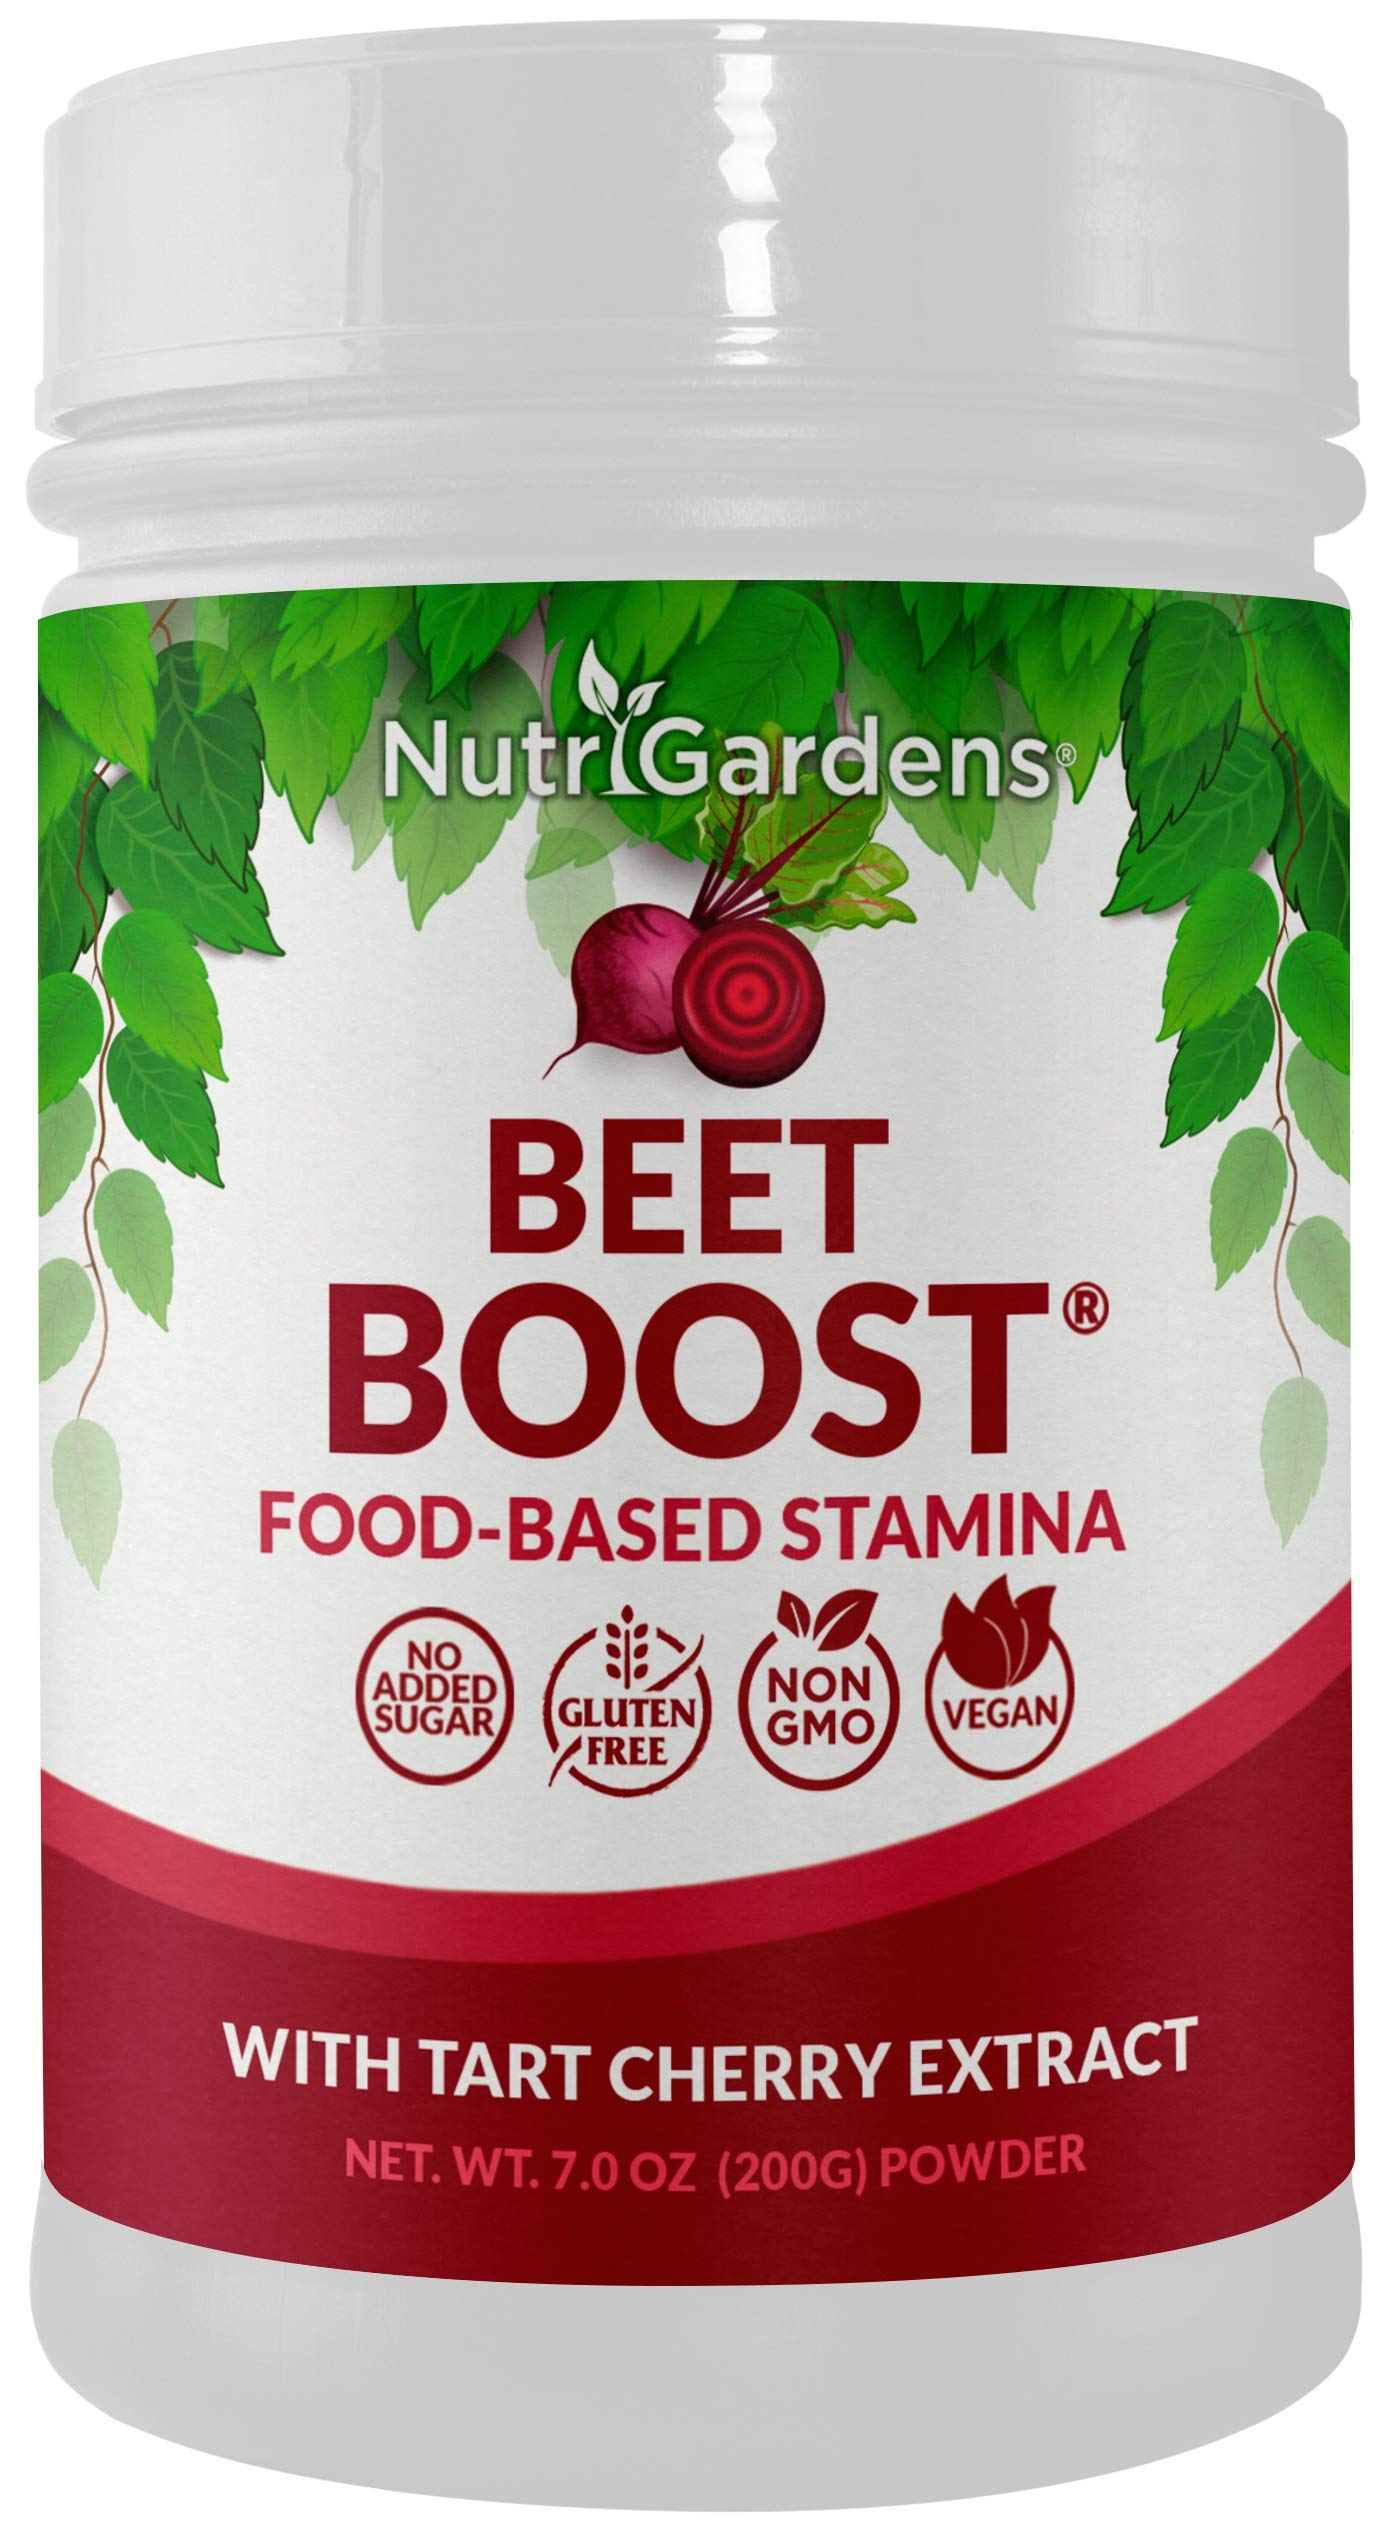 BEET BOOST® Natural Beet Root Powder with Tart Cherry 7Oz - Vegan Post Workout Recovery Powder Shake - Sports Nutrition Nitric Oxide Boosters - Anti-Inflammatory - Gluten Free & Non-GMO by Beet Boost